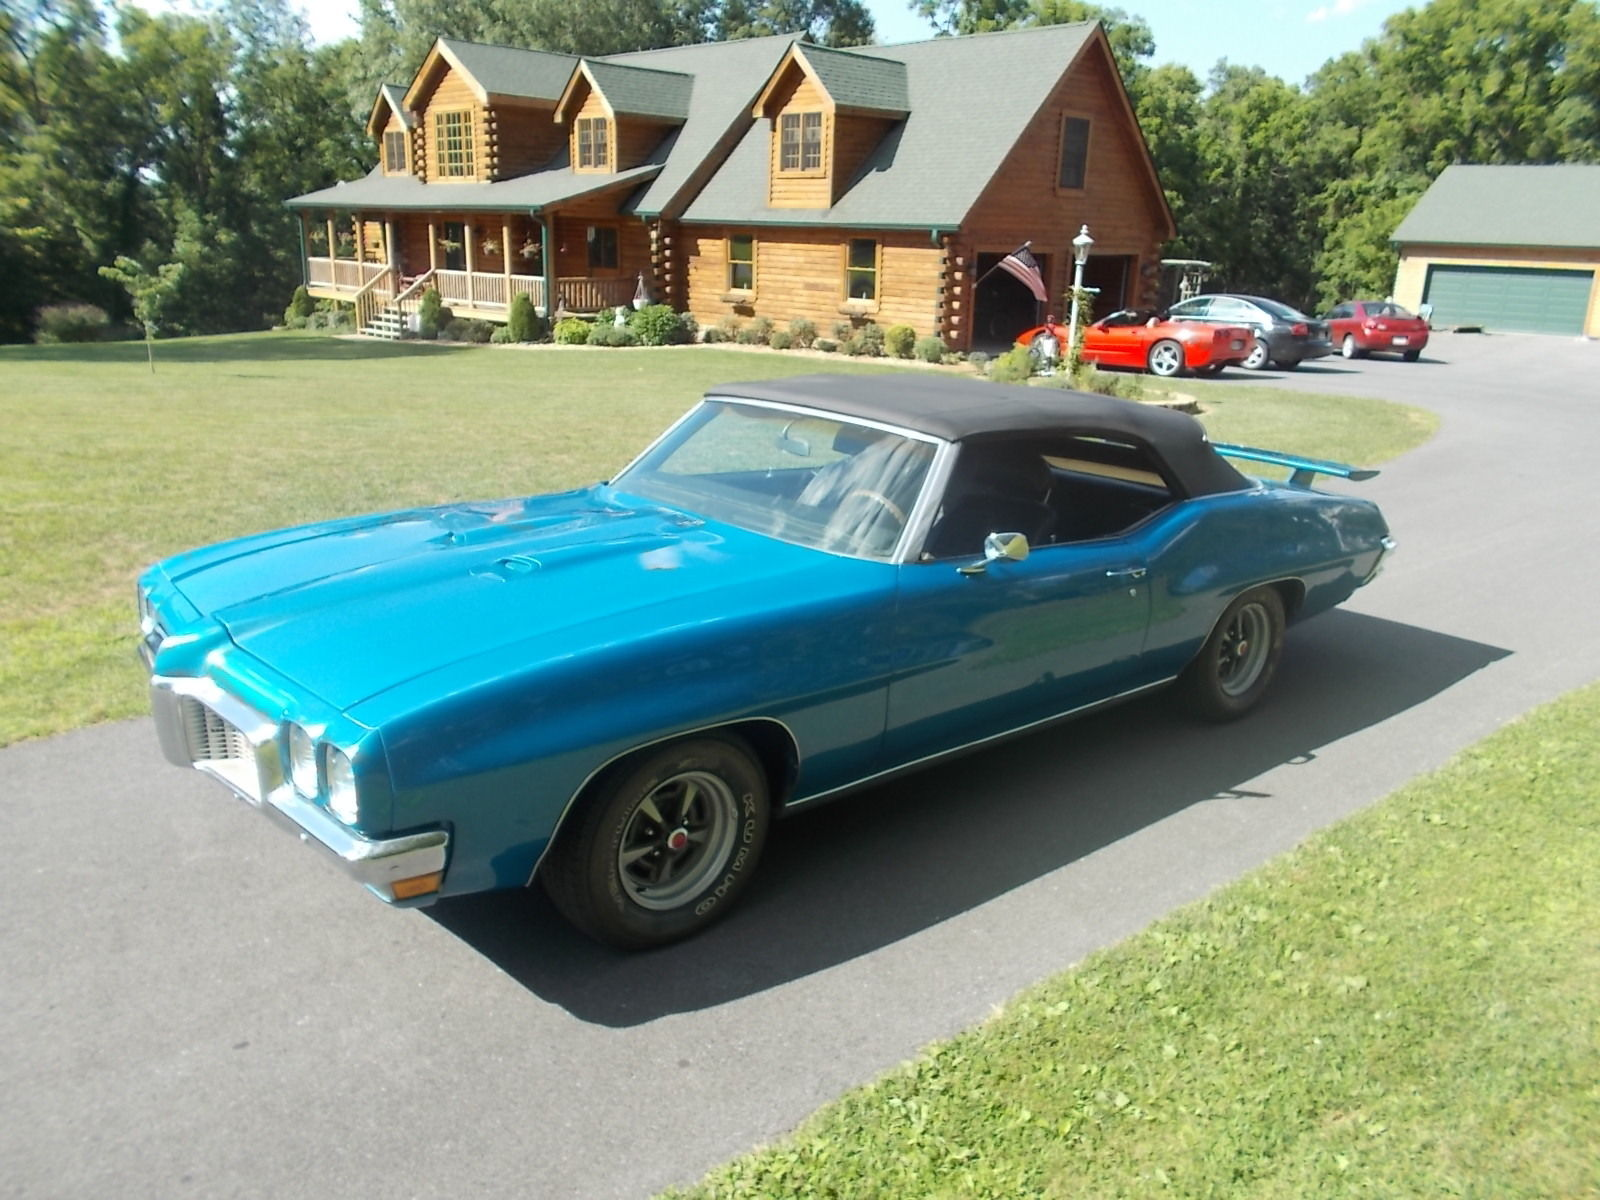 1971 pontiac lemans sport convertible gto tribute restored auto drives great for sale in. Black Bedroom Furniture Sets. Home Design Ideas